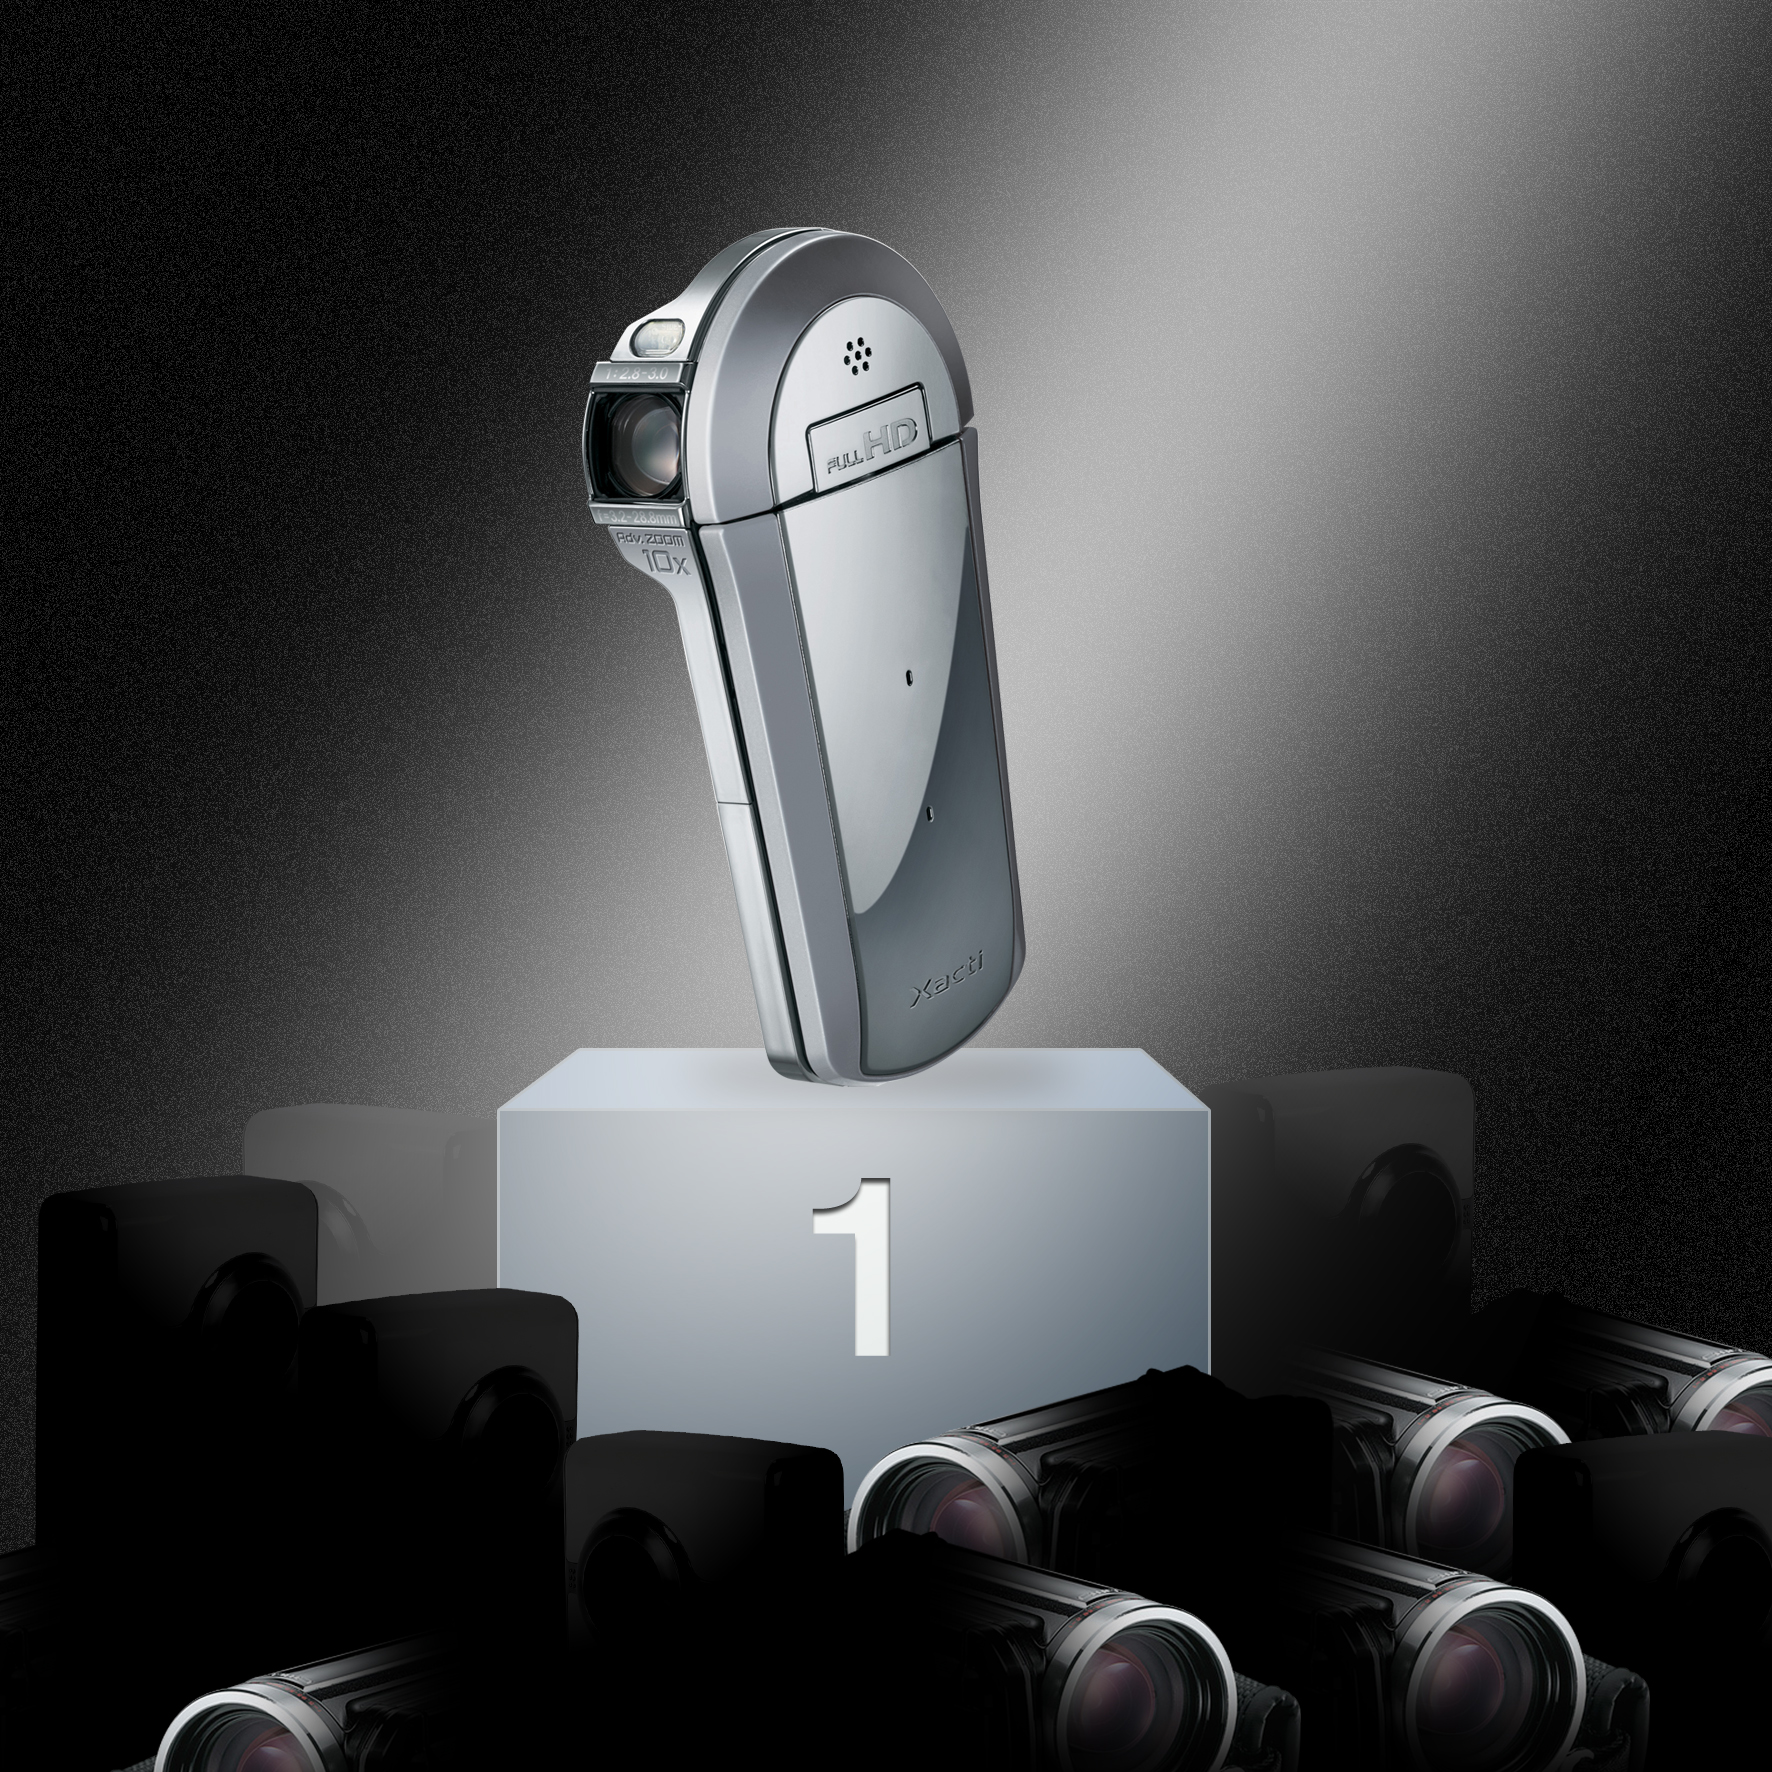 SANYO Xacti CS1 -The winner of T3's Camcorder Of The Year